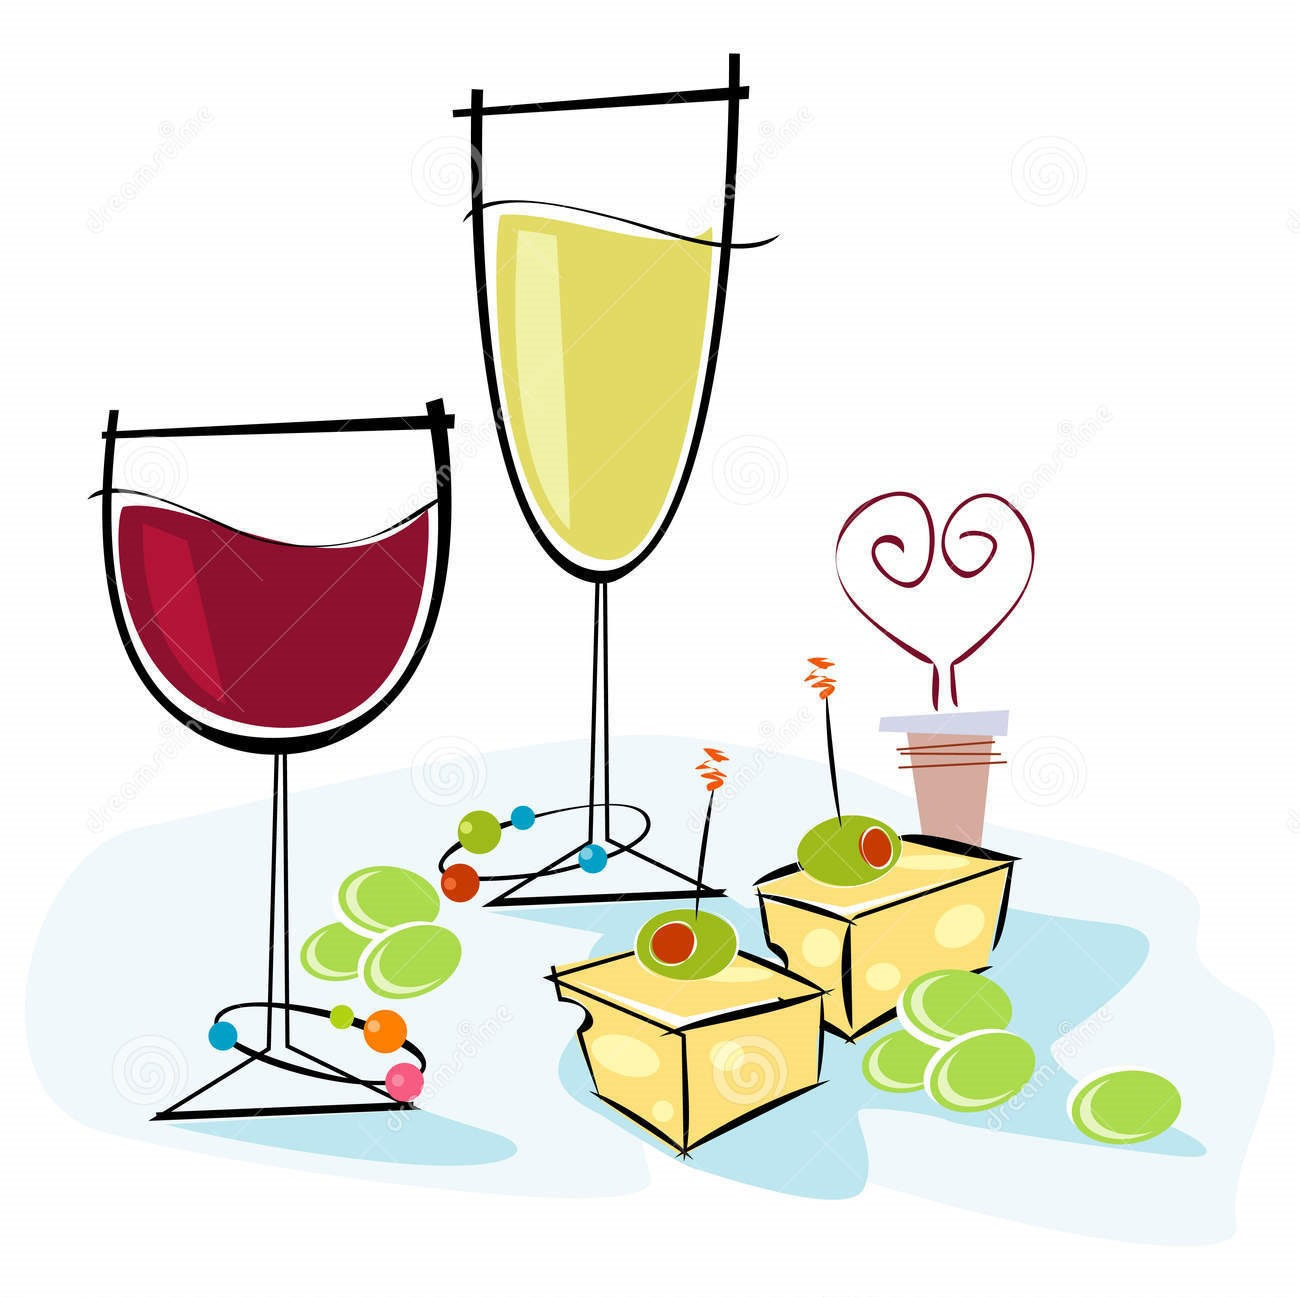 Valentines wine clipart free jpg transparent library Valentine Clipart Wine And Cheese - Free Clipart jpg transparent library